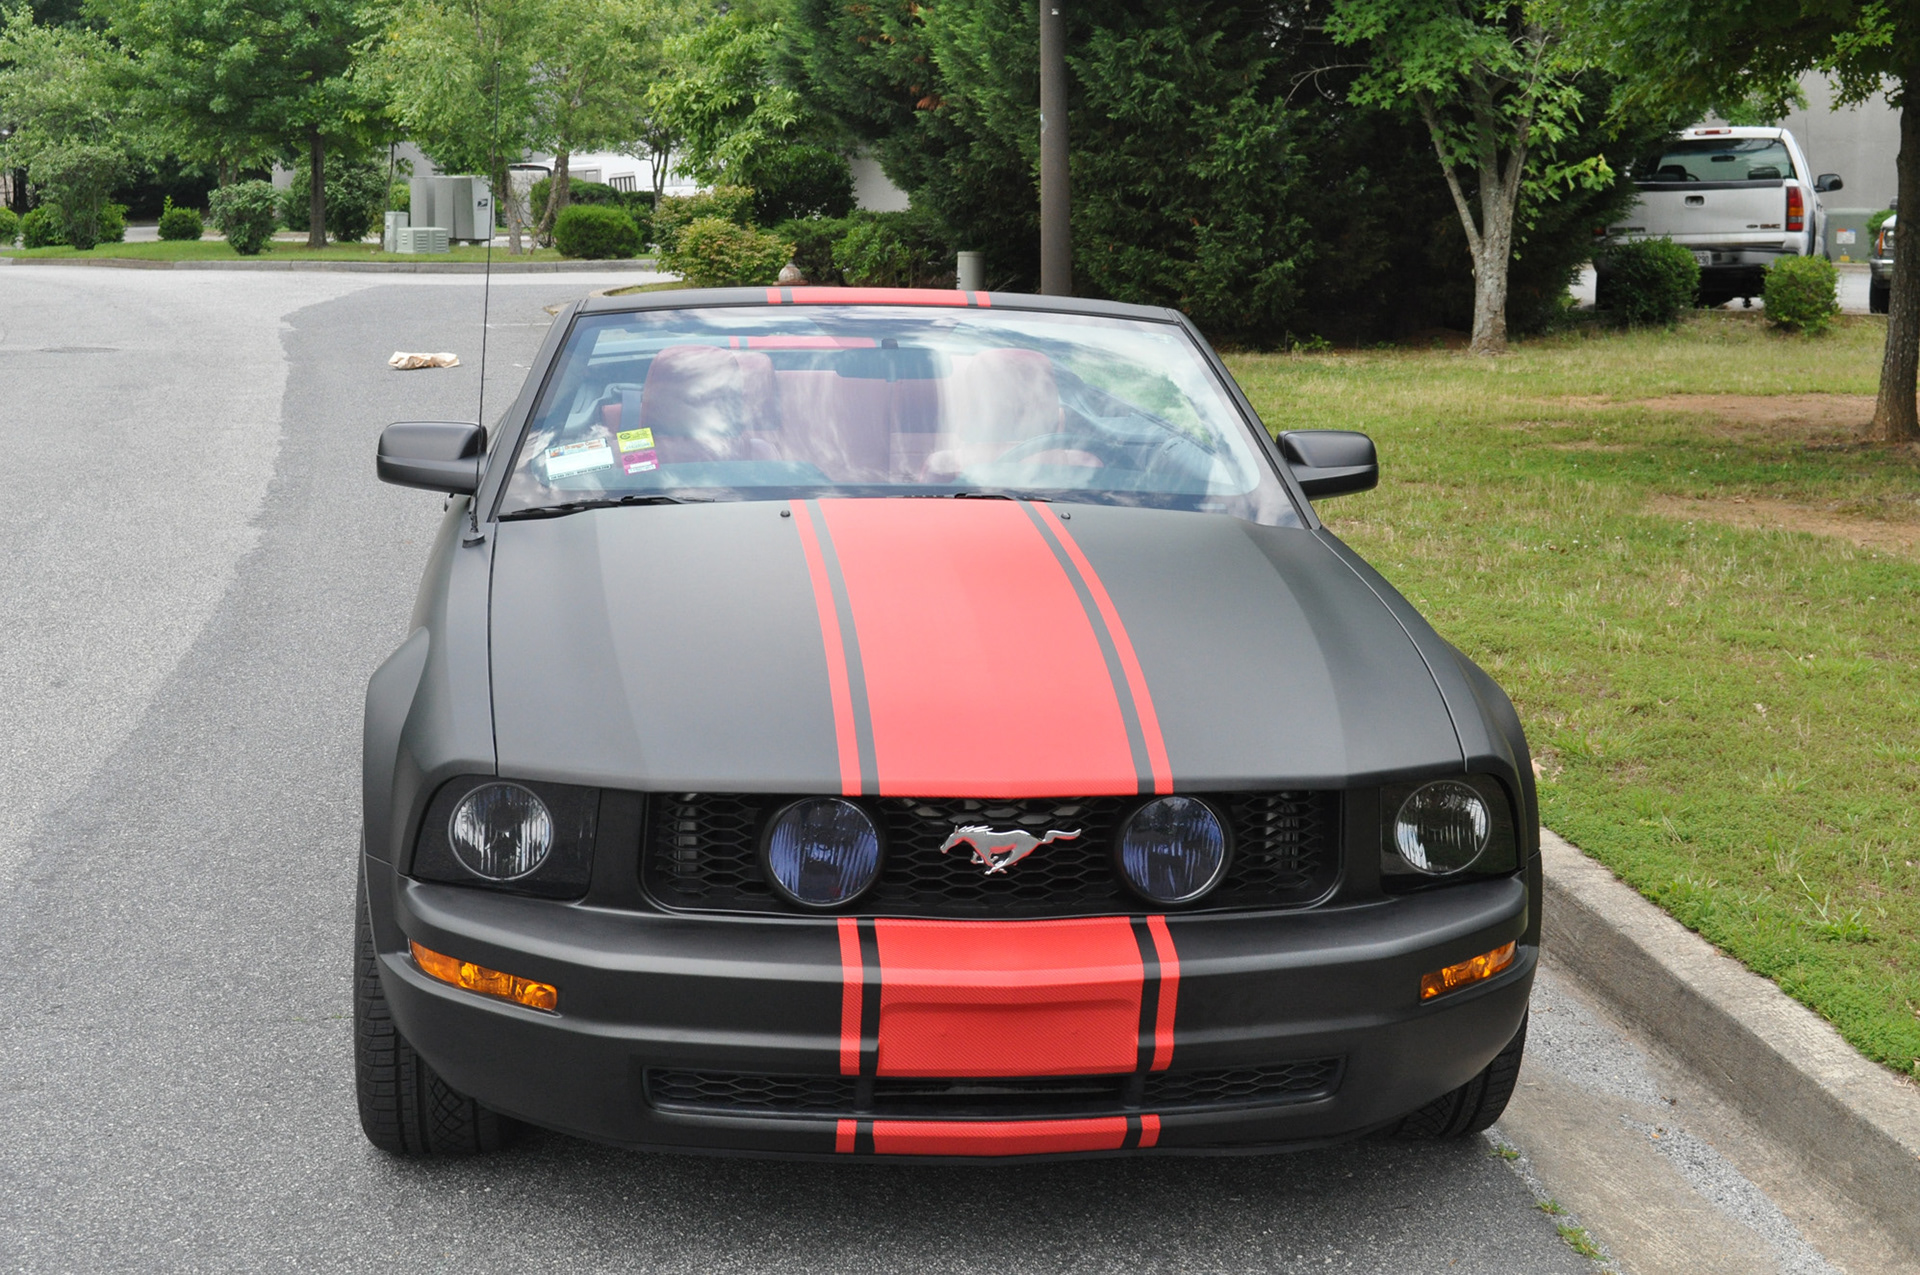 Black Color Change And Adding Some Beautiful Red Carbon Fiber Racing Stripes Rocker Panel On Top Of It Making This Mustang Look Off The Chart